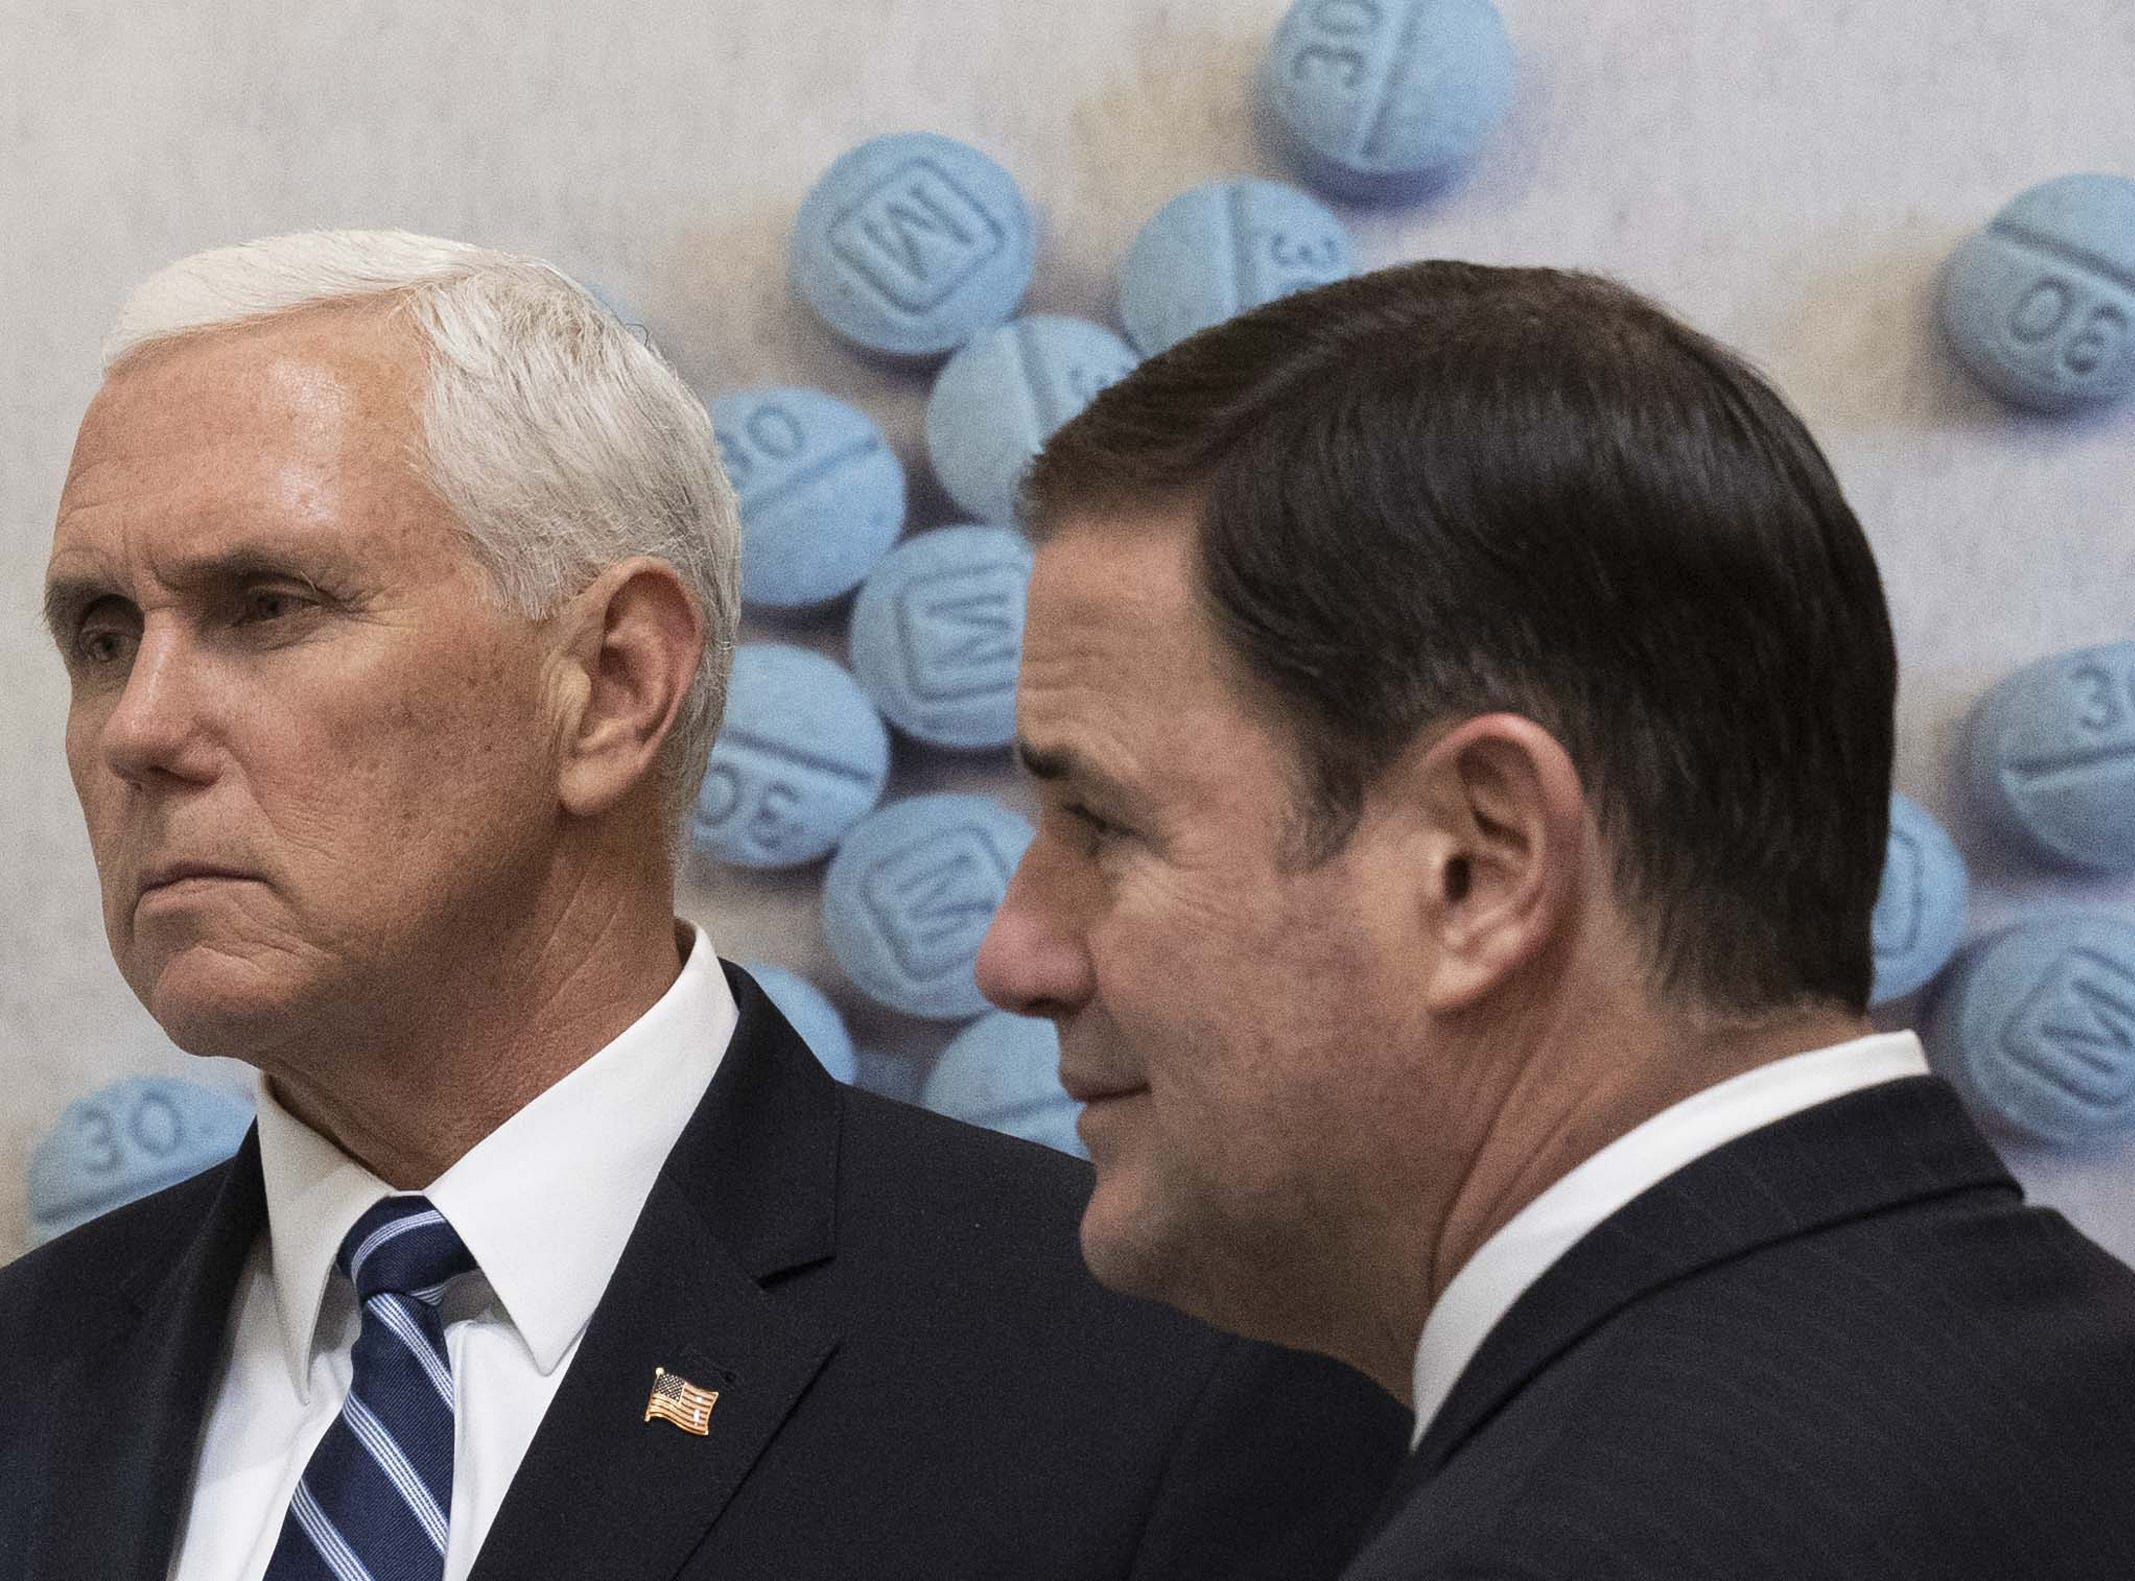 Vice President Mike Pence and Gov. Doug Ducey tour a U.S. Drug Enforcement Administration facility in the Phoenix area on March 5, 2019.